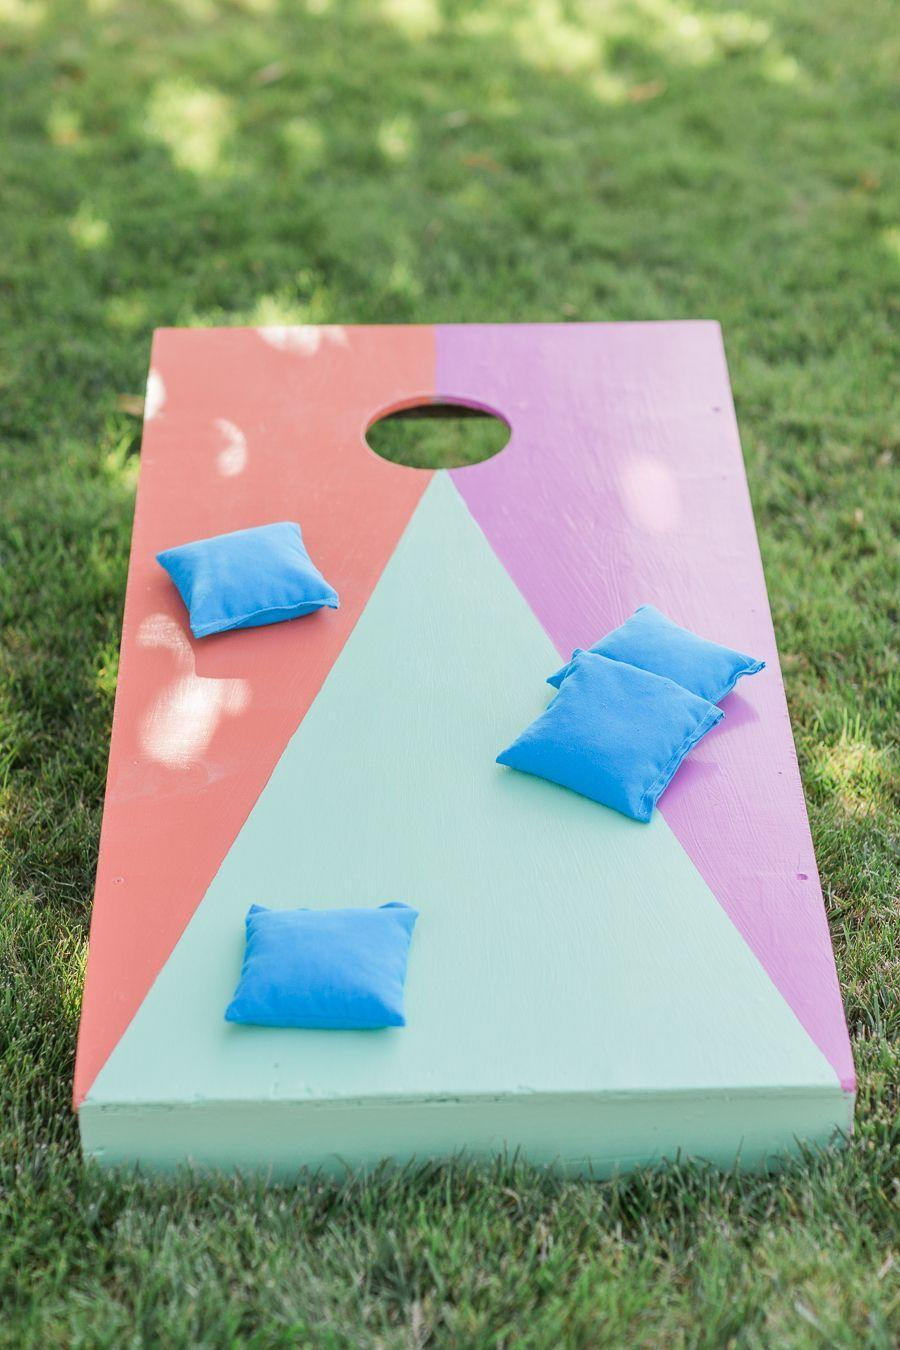 "<p>Easter pastels make this game perfectly relevant for the holiday—and what a great excuse to get outside! You could even decorate the bean bags with chicks and bunnies to extend the spring theme even further.</p><p><strong>Get the tutorial at <a href=""http://www.stylemepretty.com/living/2014/09/19/40th-birthday-fiesta/"" rel=""nofollow noopener"" target=""_blank"" data-ylk=""slk:Style Me Pretty"" class=""link rapid-noclick-resp"">Style Me Pretty</a>.</strong></p><p><a class=""link rapid-noclick-resp"" href=""https://www.amazon.com/GoSports-Solid-Wood-Premium-Cornhole/dp/B00HFAH9WU?tag=syn-yahoo-20&ascsubtag=%5Bartid%7C10050.g.3100%5Bsrc%7Cyahoo-us"" rel=""nofollow noopener"" target=""_blank"" data-ylk=""slk:SHOP CORN HOLE SETS"">SHOP CORN HOLE SETS</a></p>"